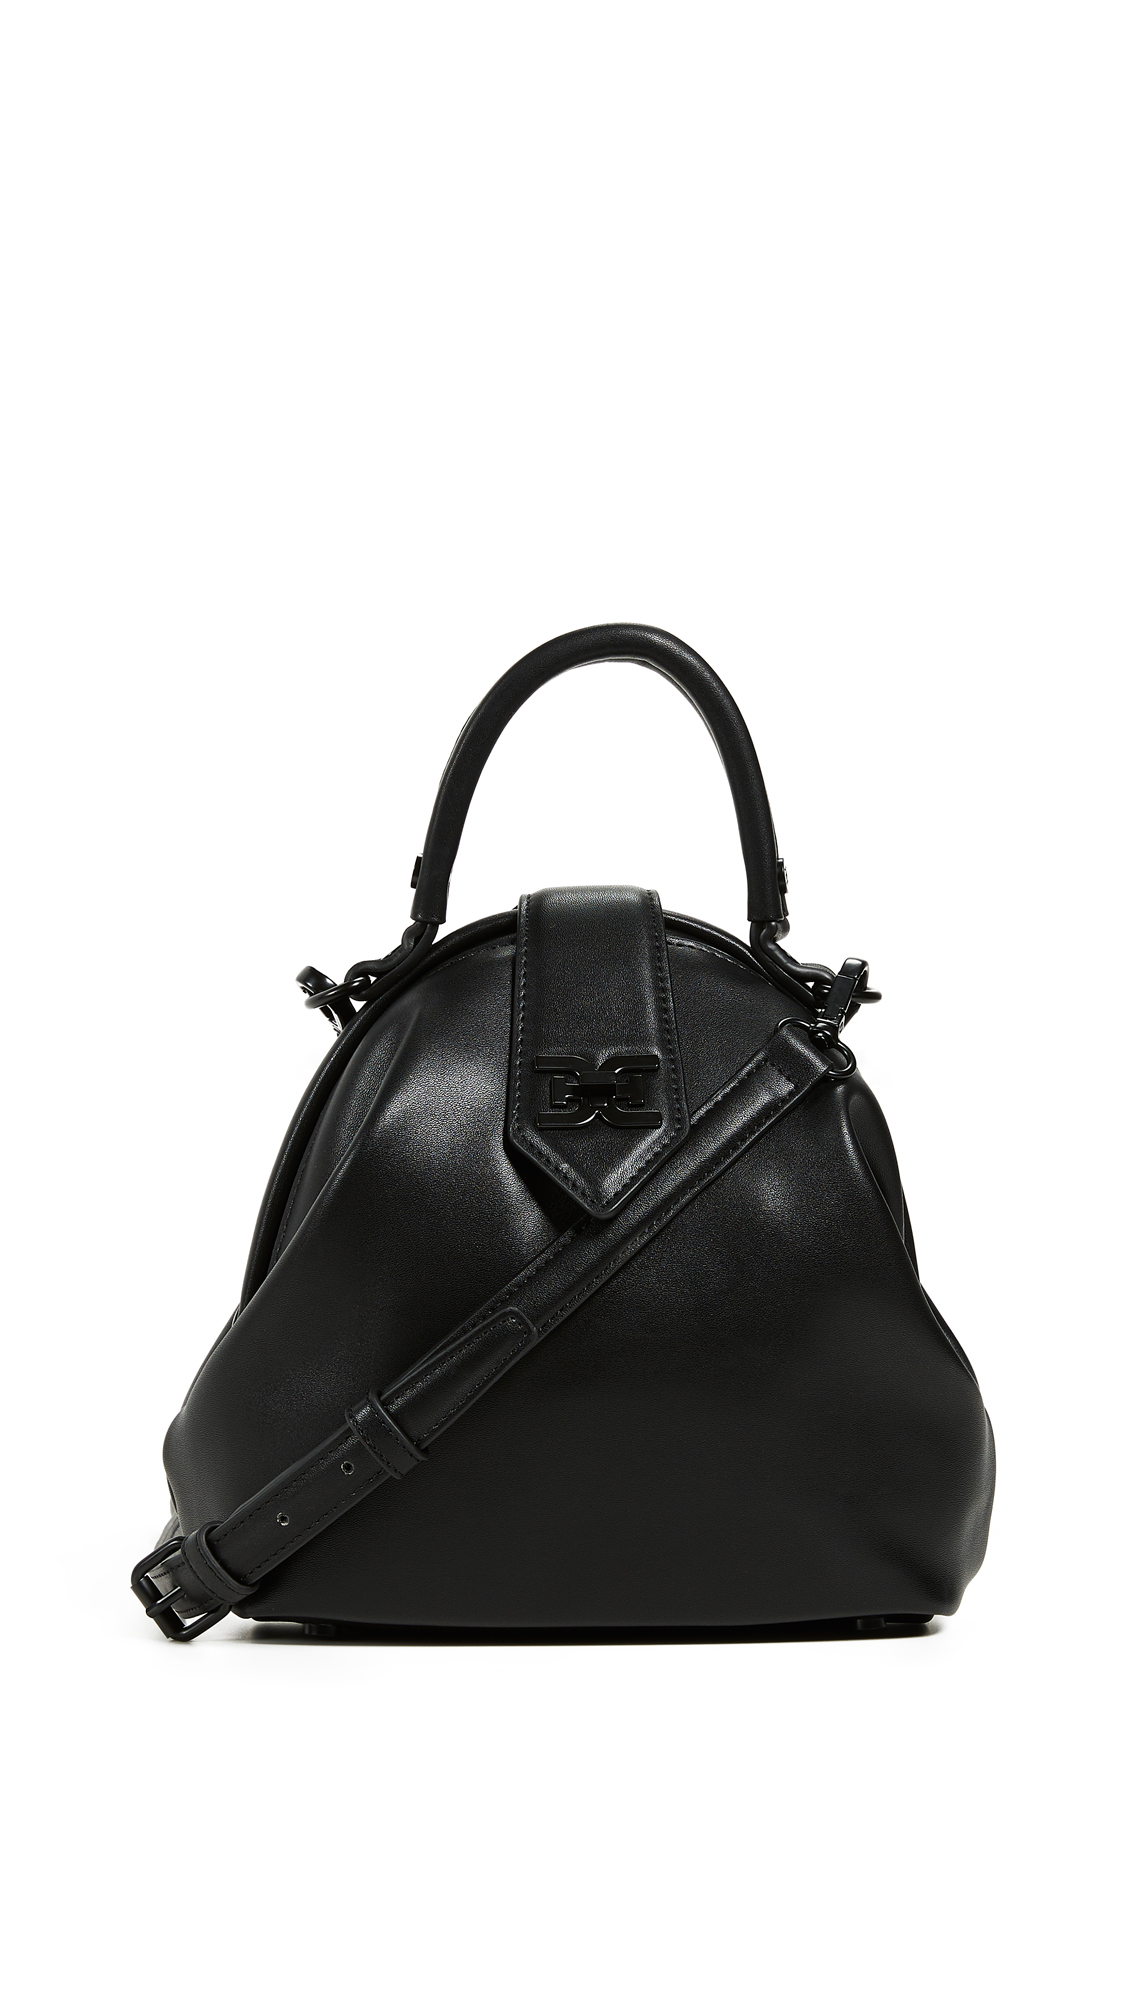 Sam Edelman Teegan Mini Frame Bag In Black